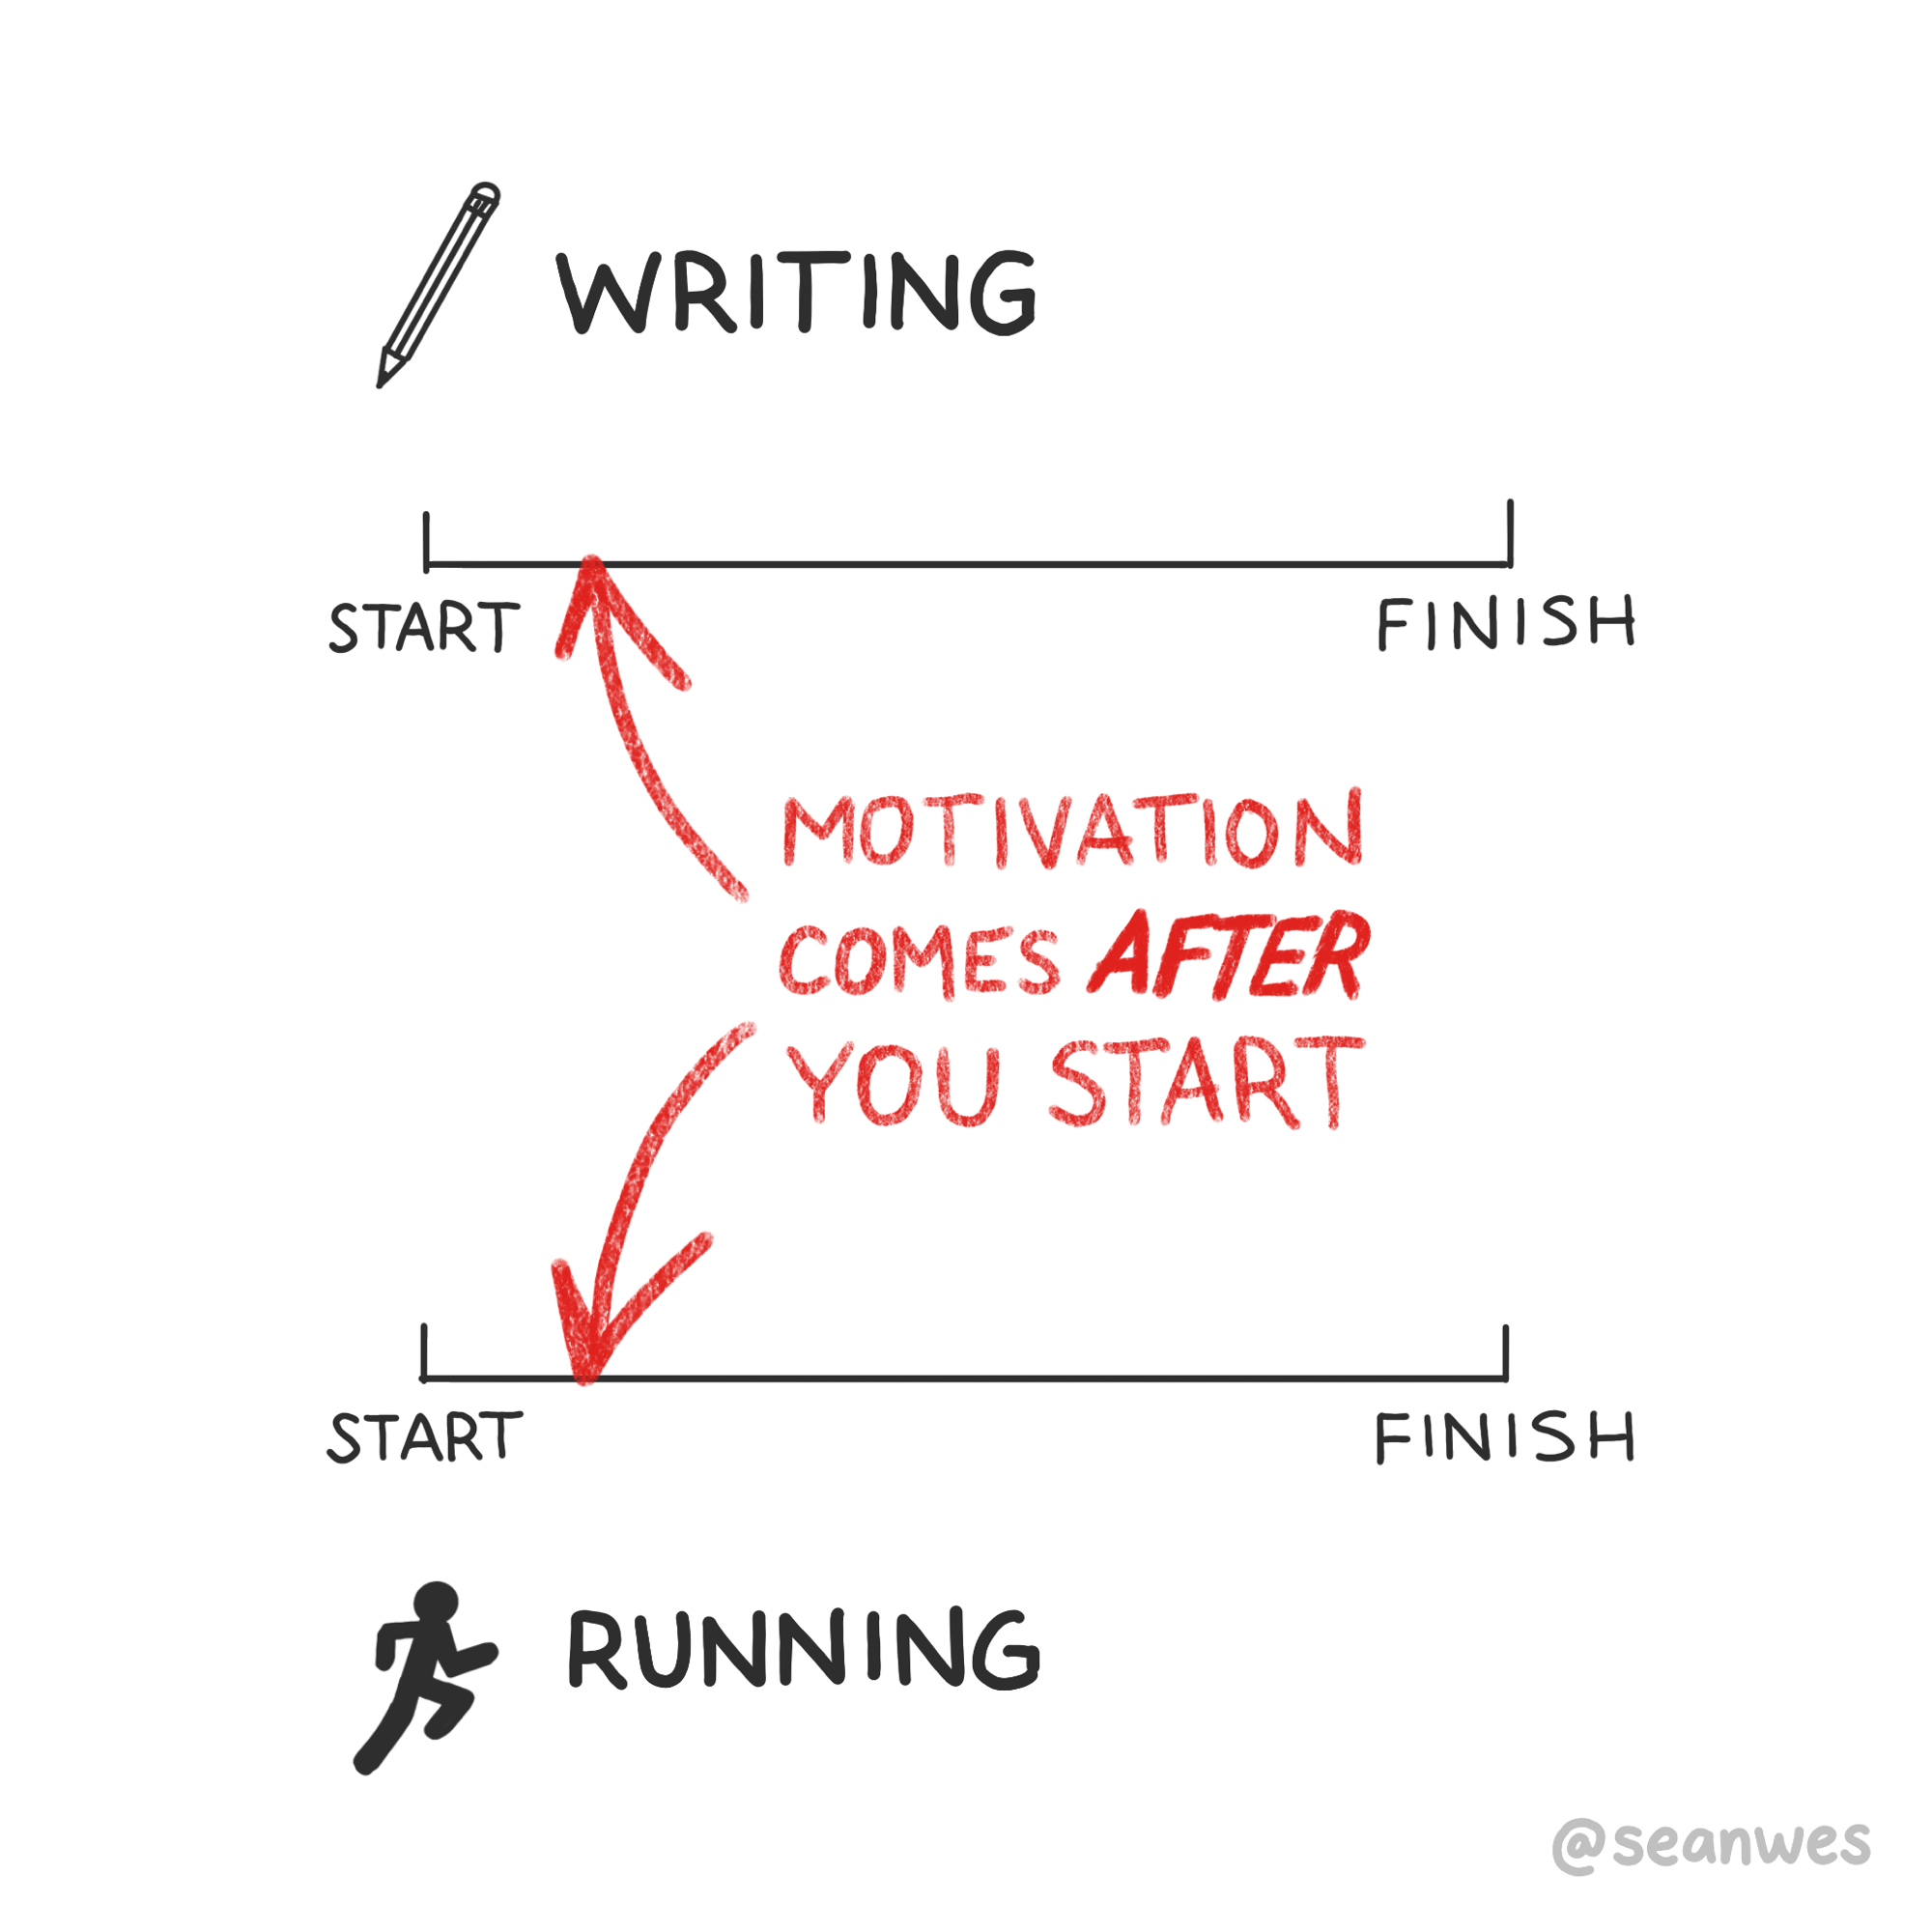 [Image] Start before you're motivated.